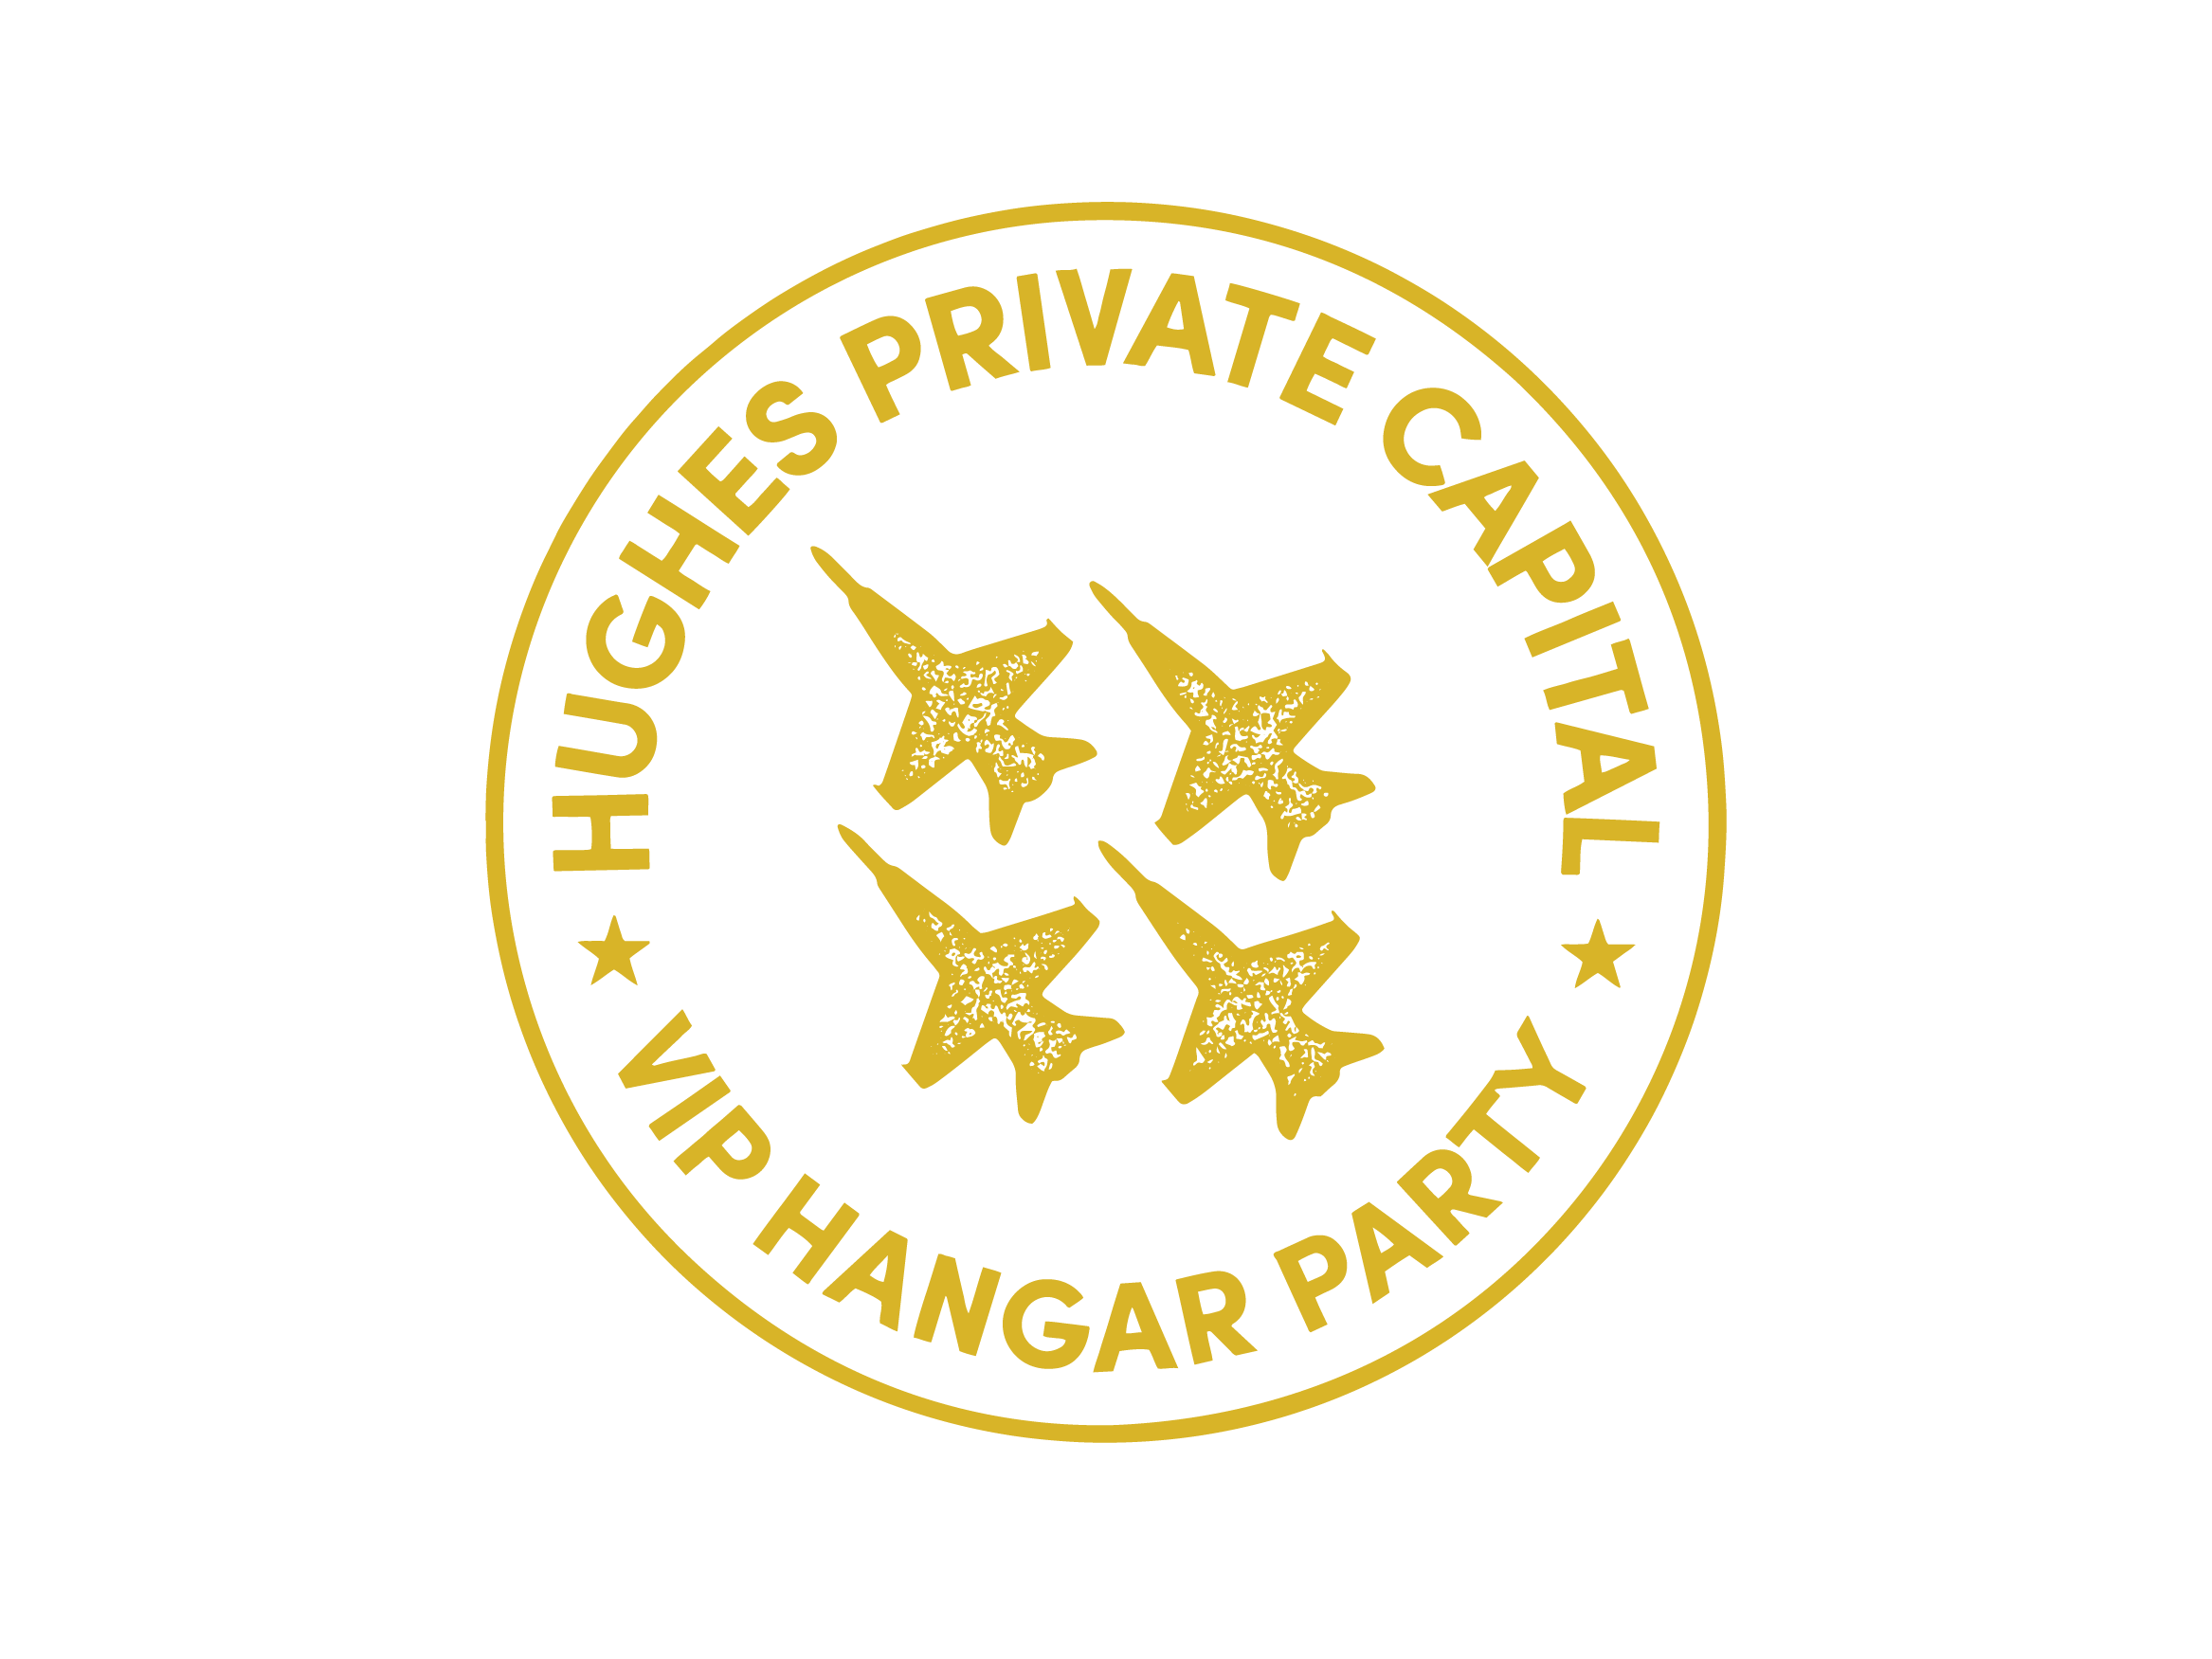 hughesprivatecapitalparty.image